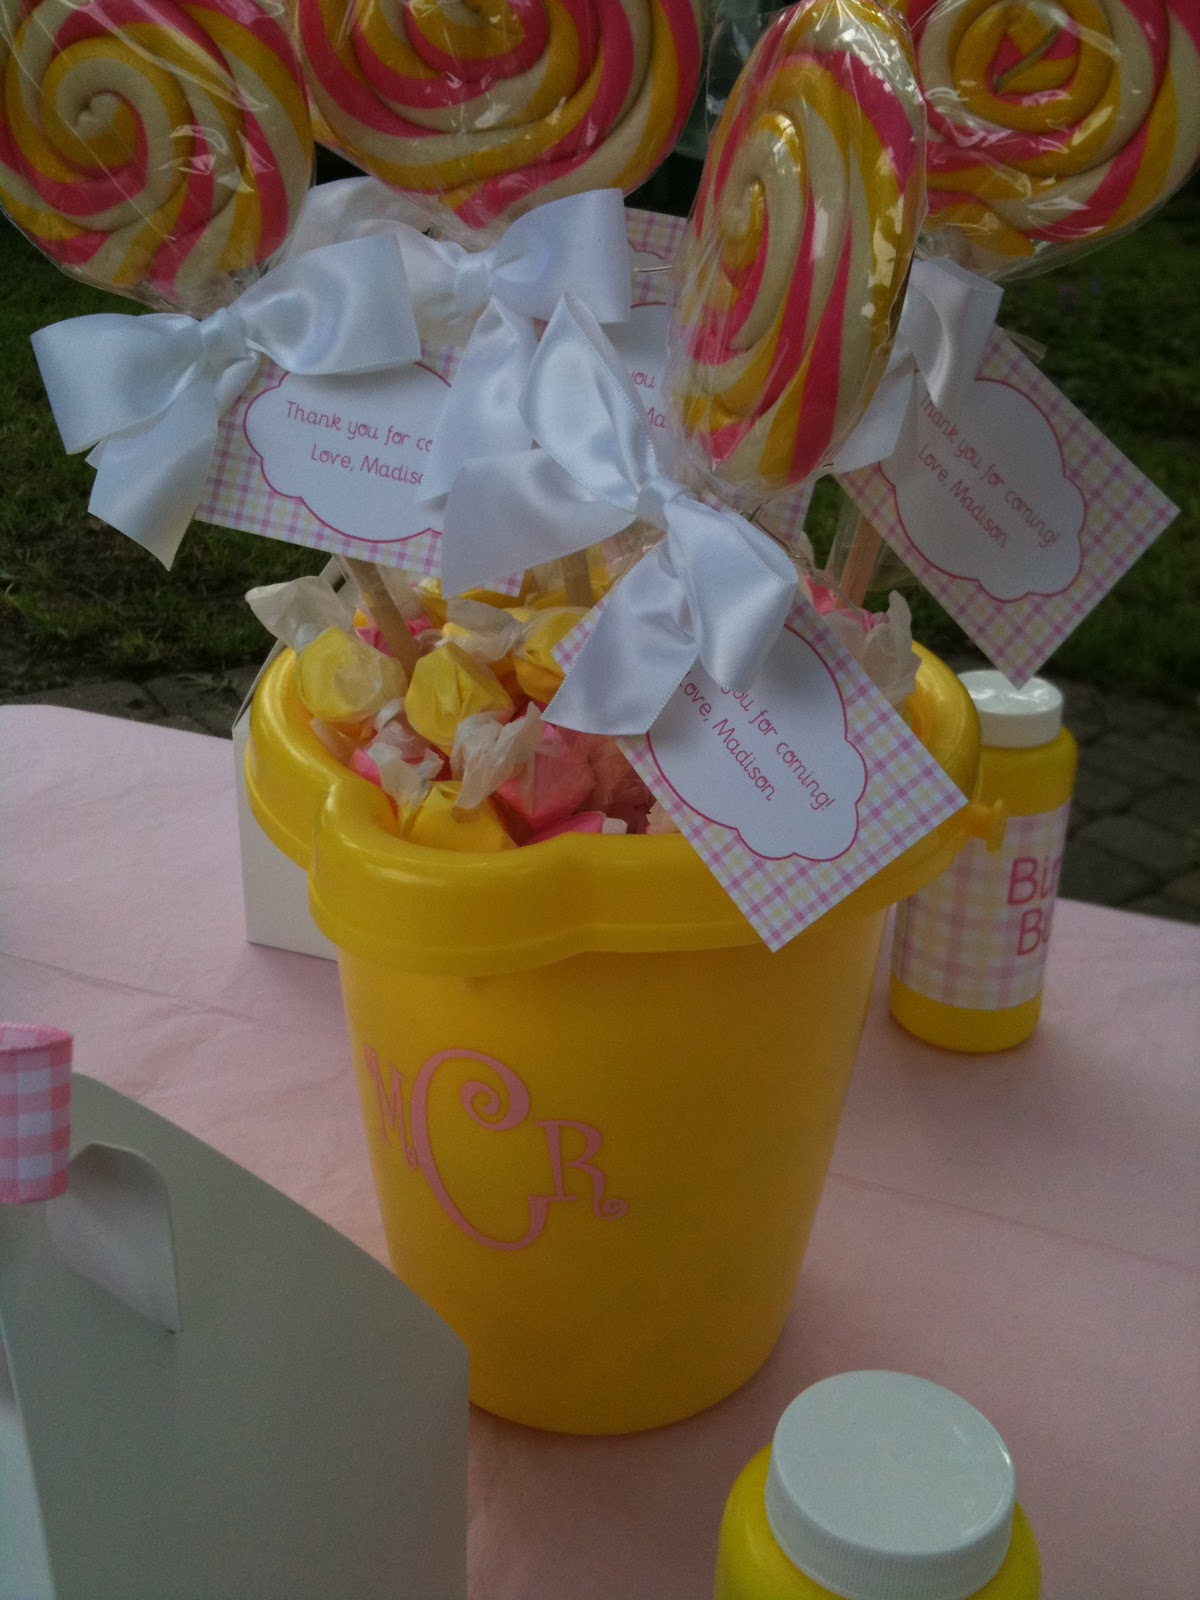 Kate landers events llc a pink yellow first birthday